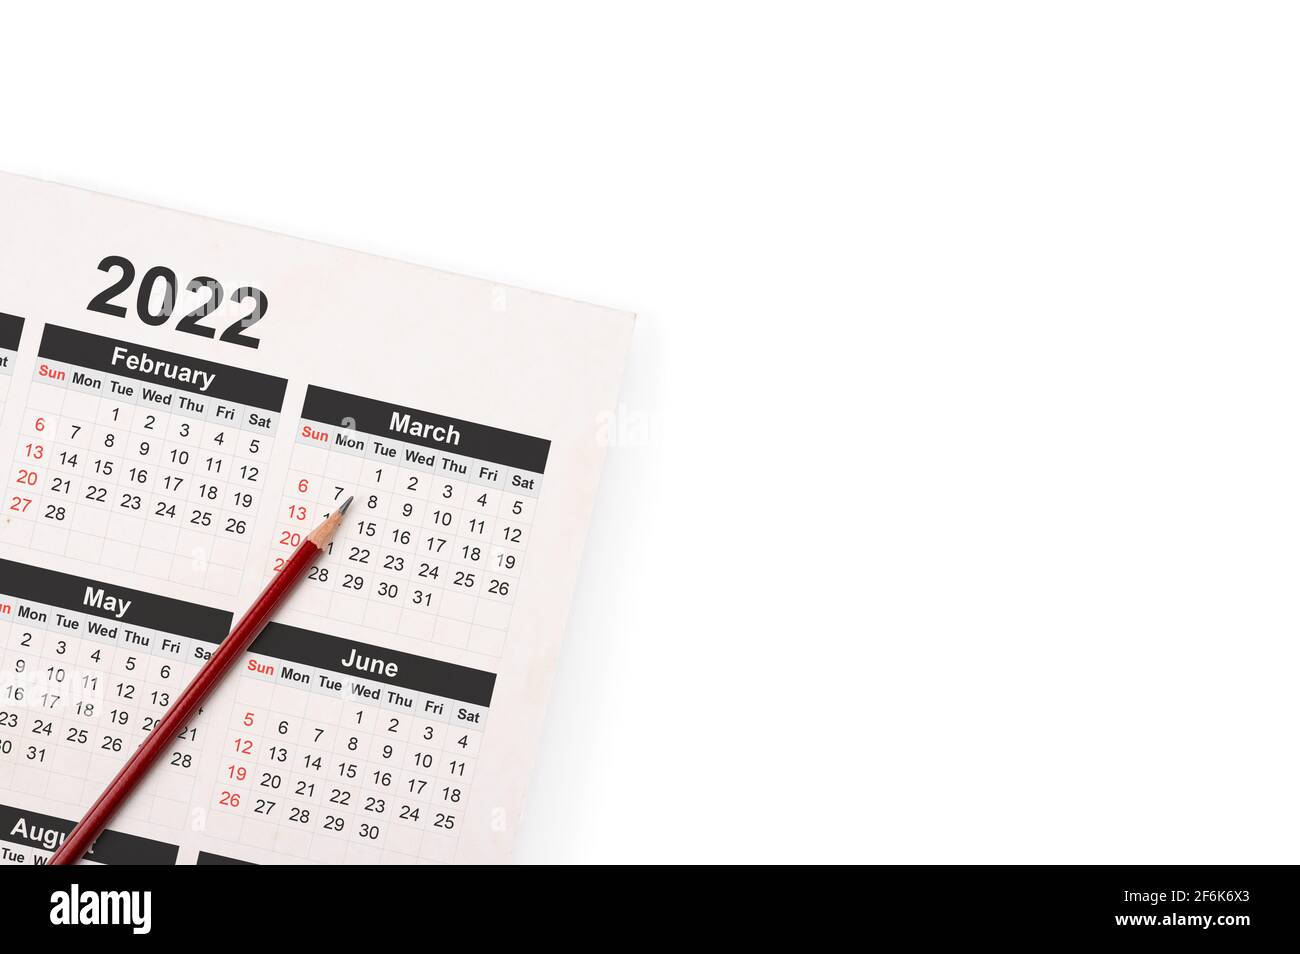 Appointment Calendar 2022.2022 Calendar High Resolution Stock Photography And Images Alamy